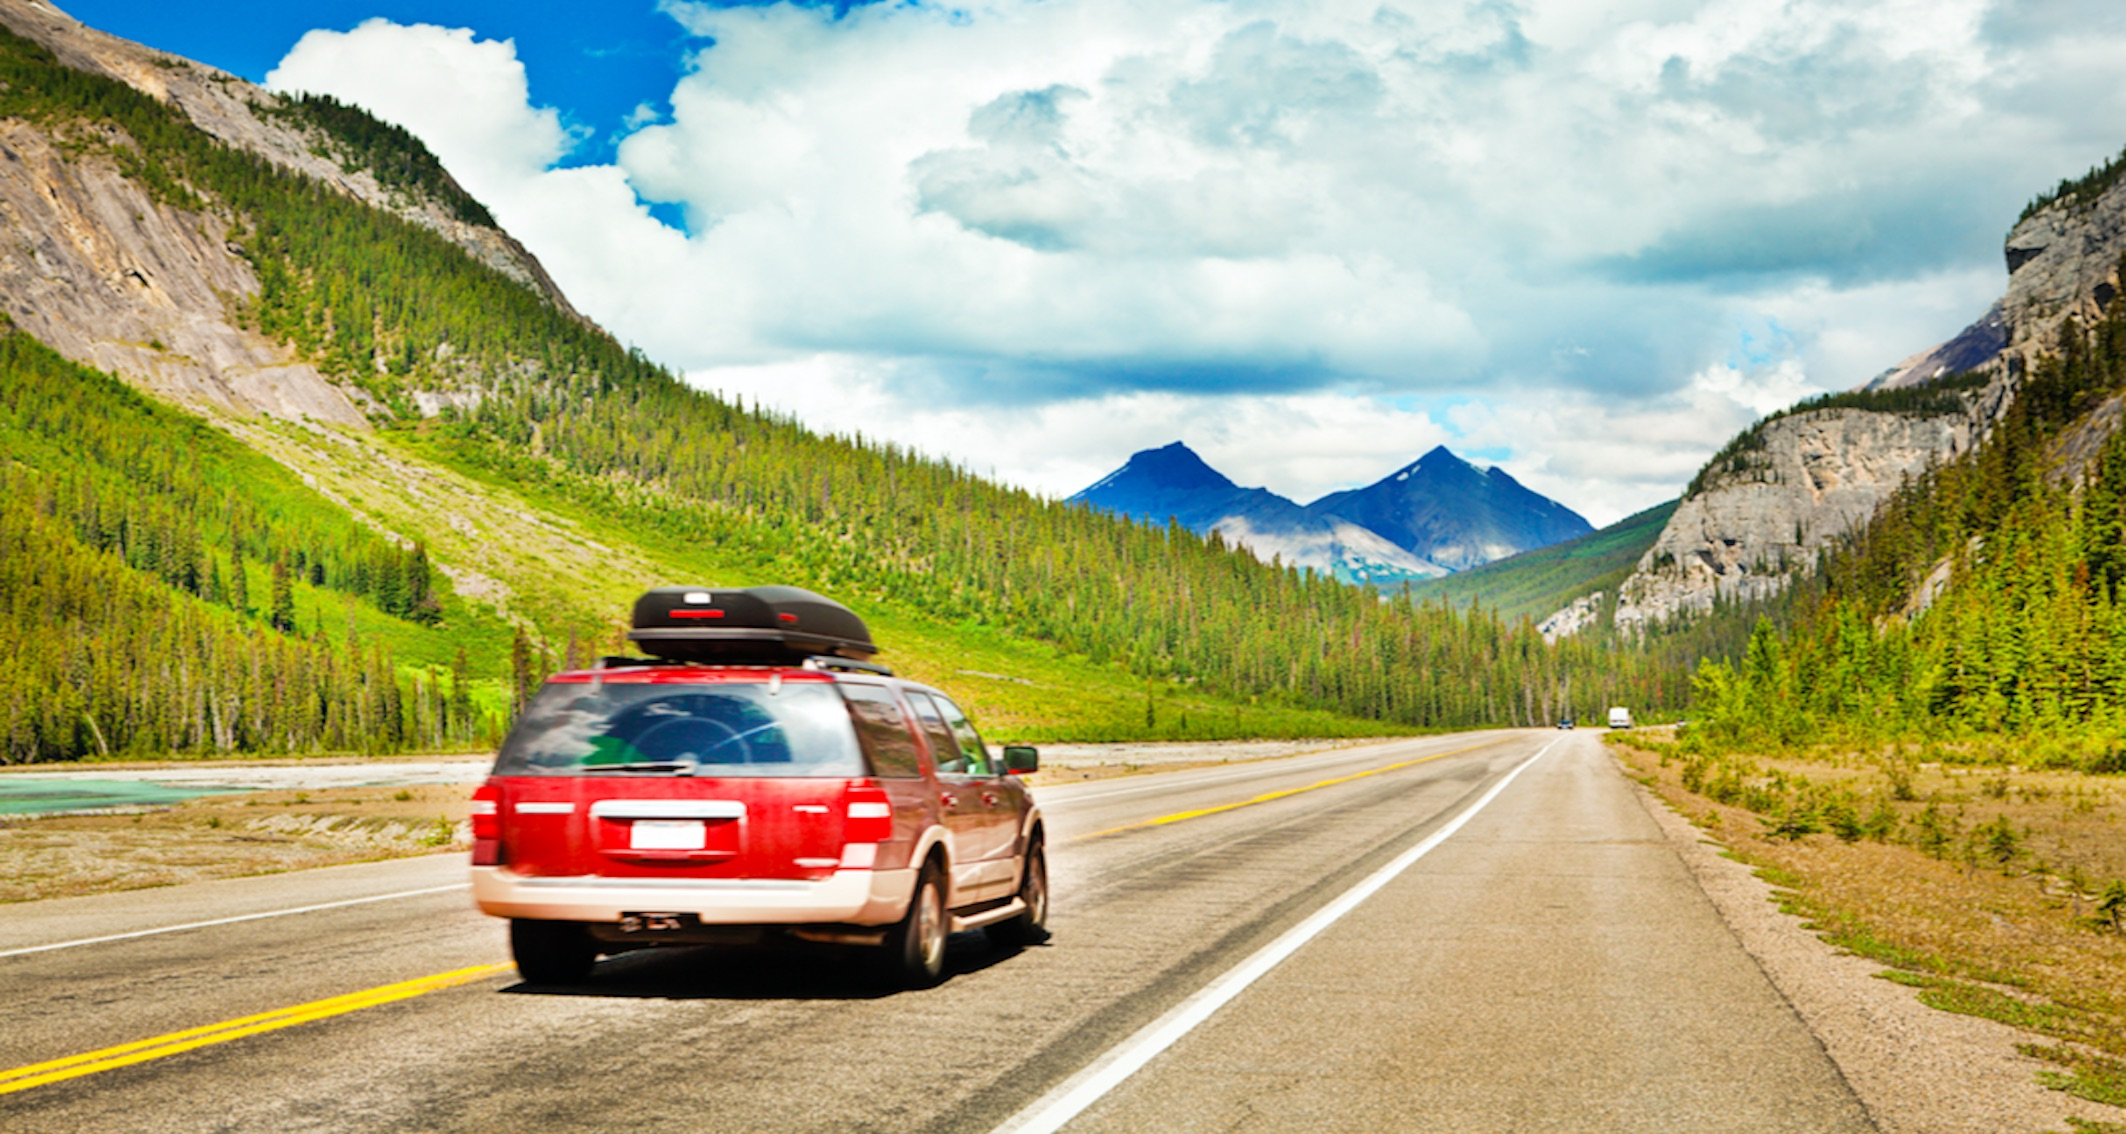 How To Road Trip On The Cheap